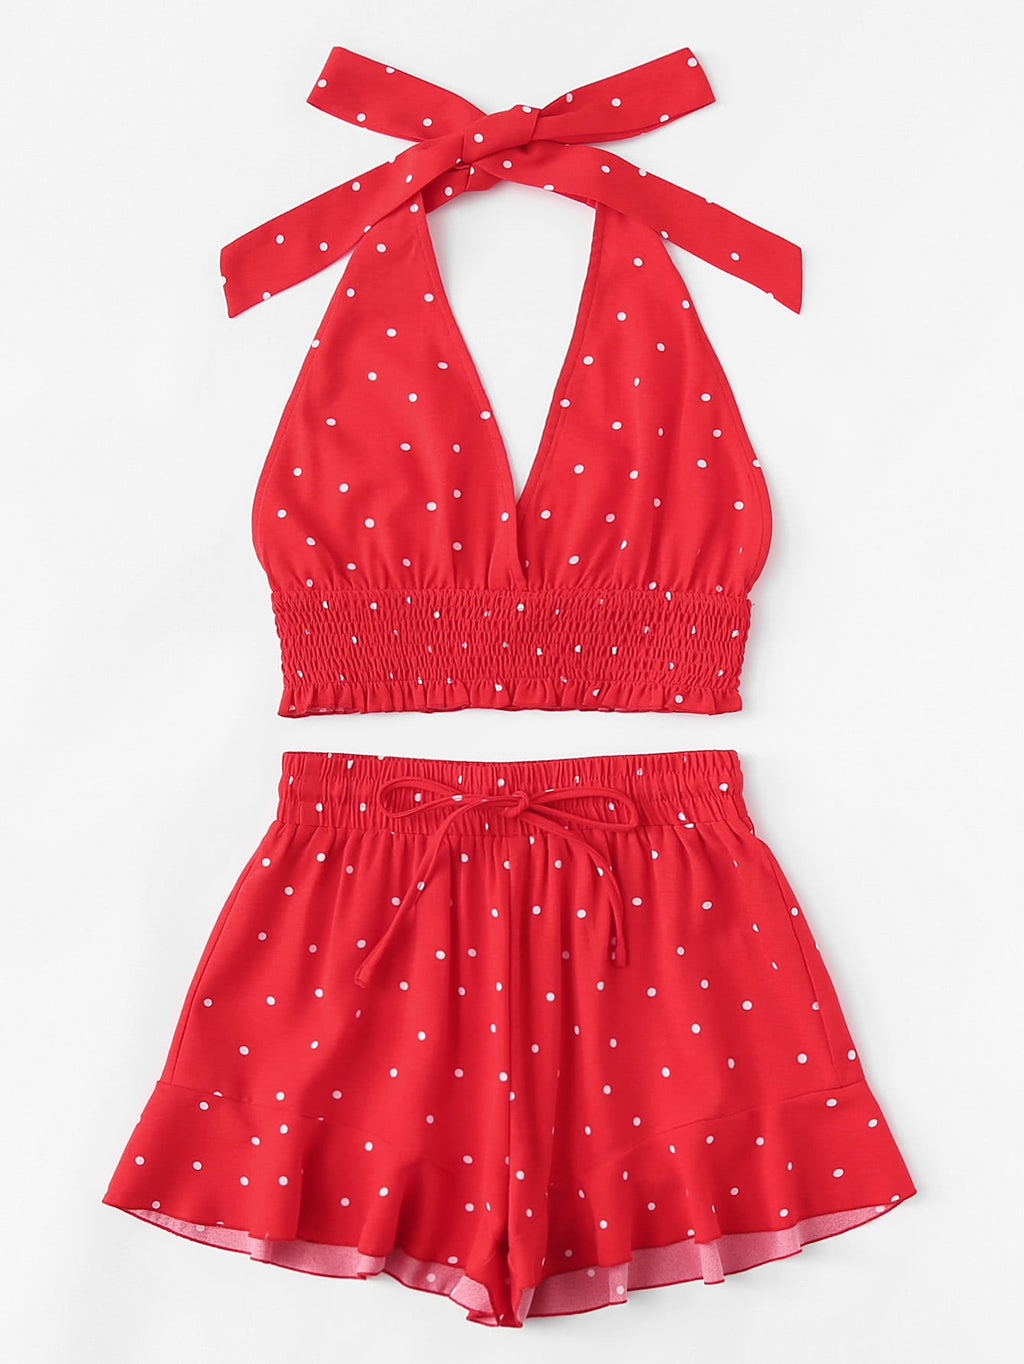 Have you seen her polka dot set